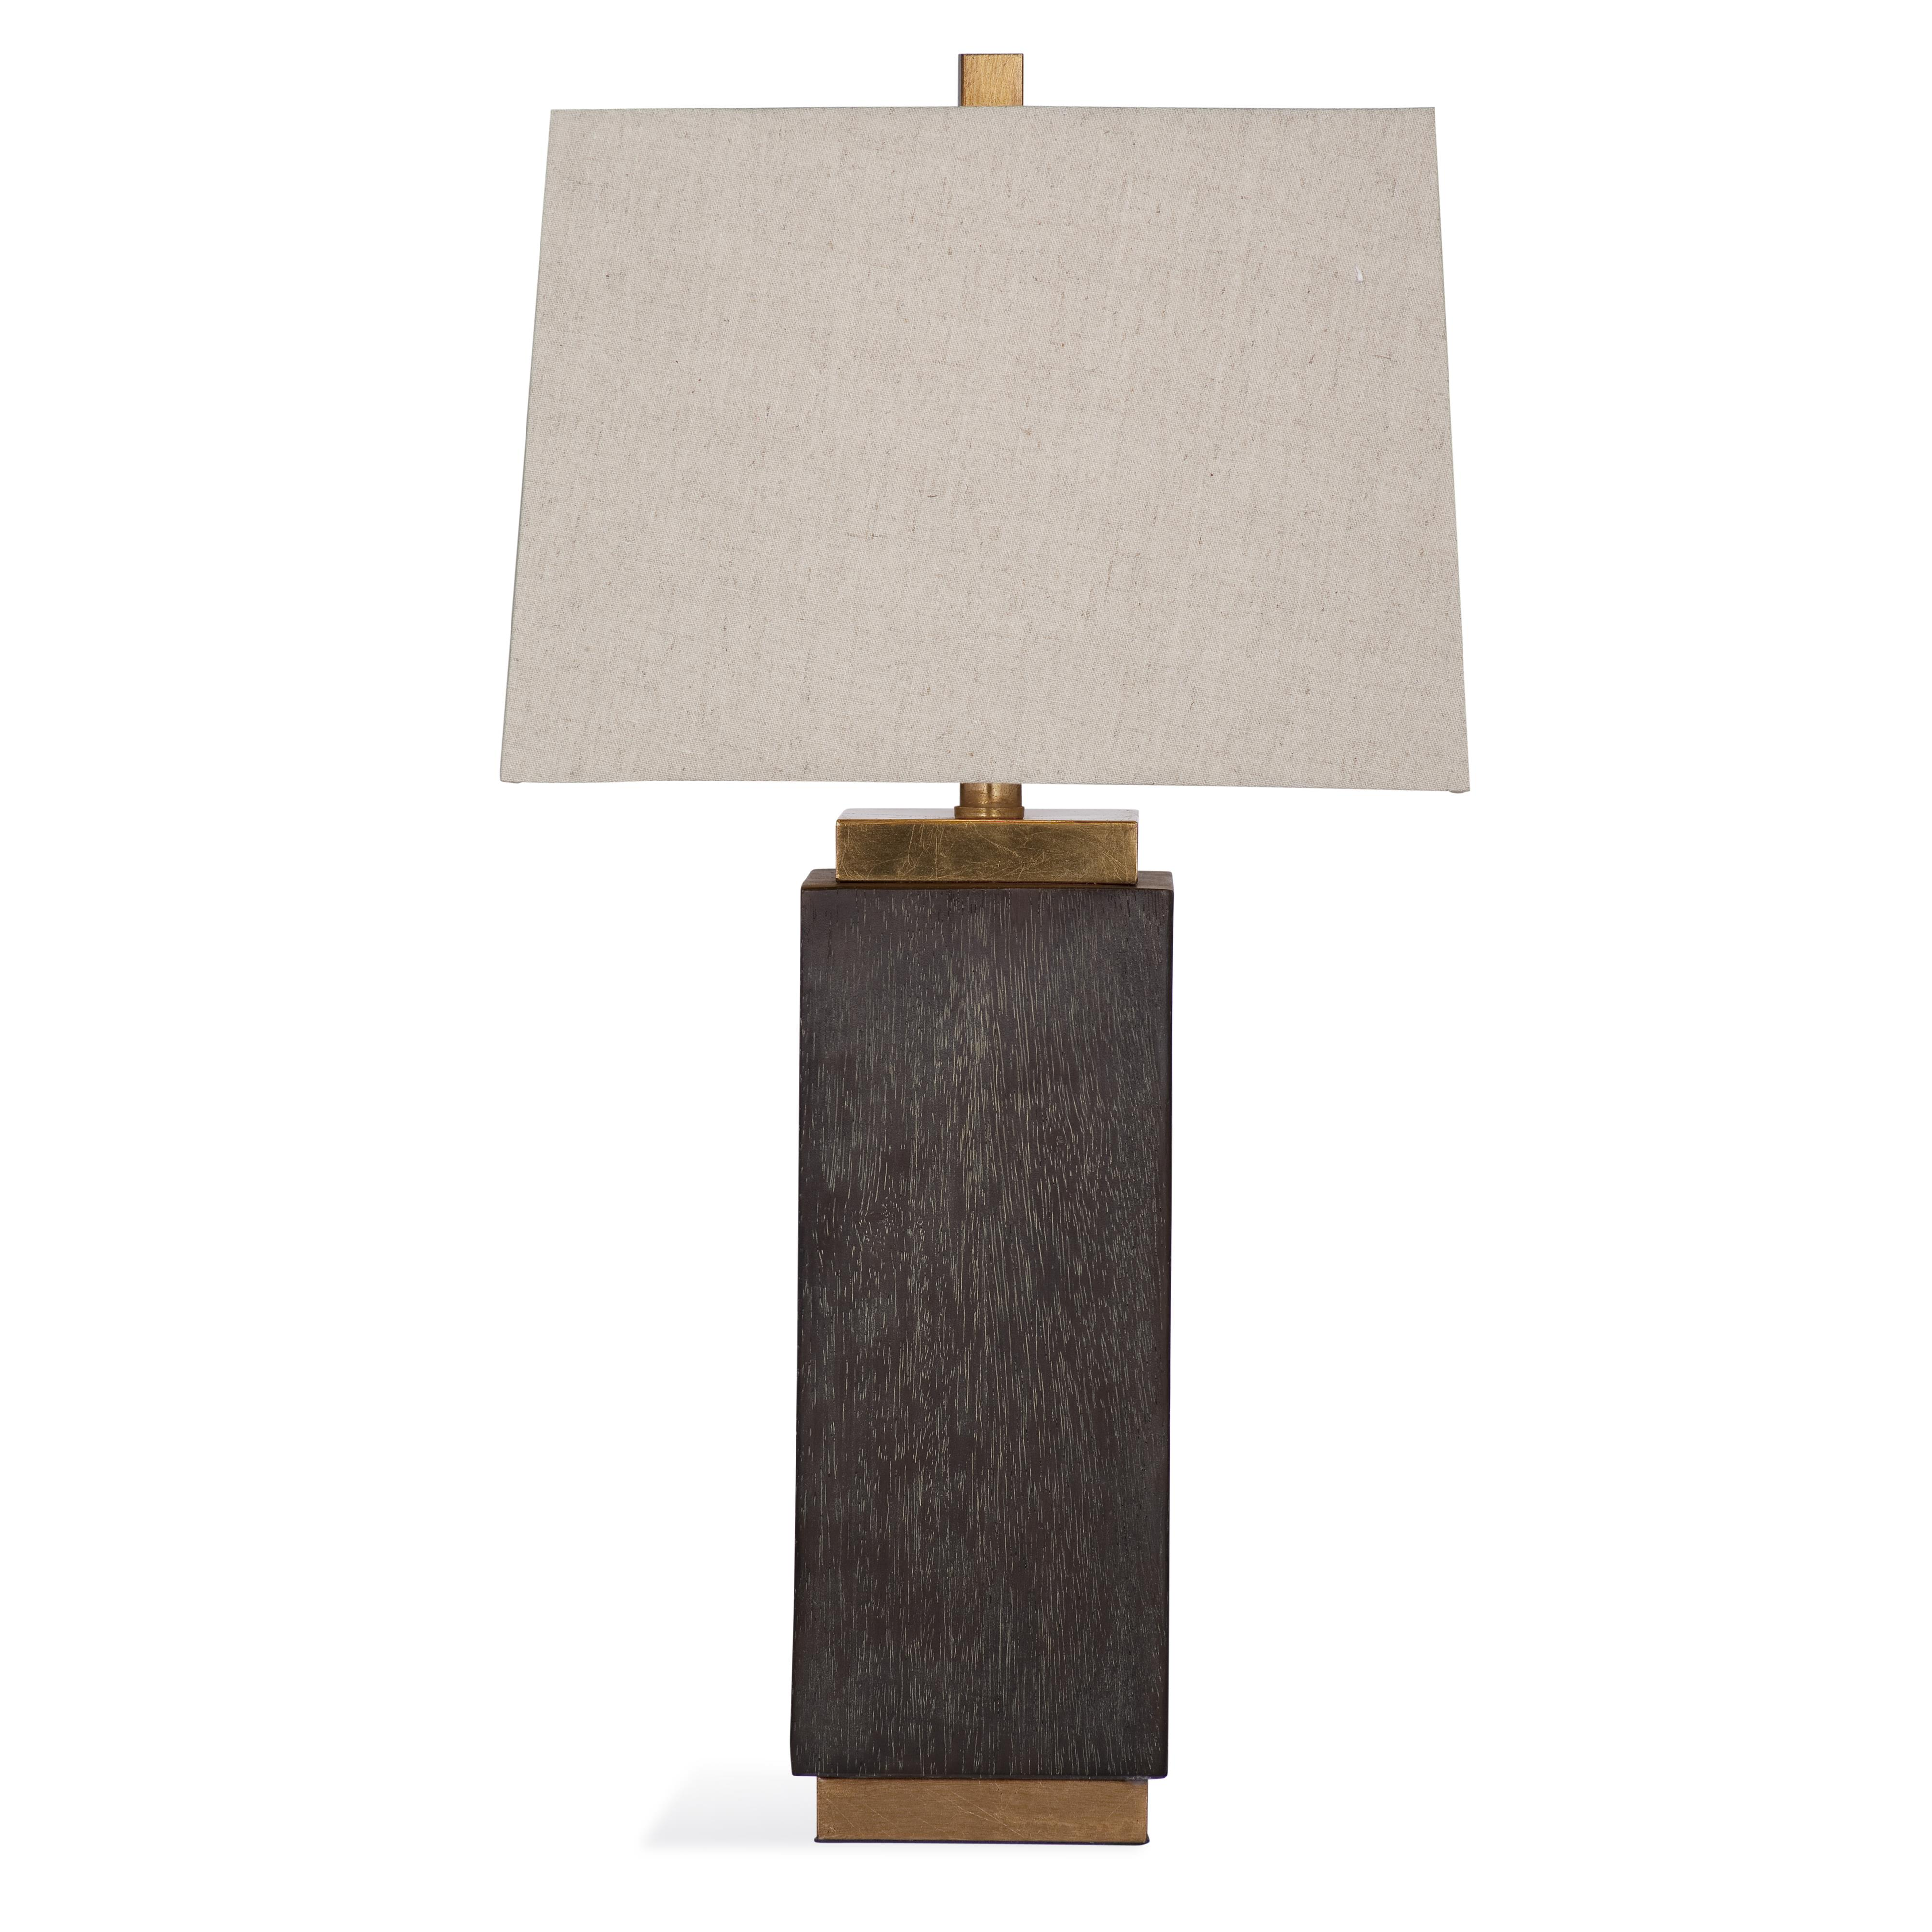 Belgian Luxe Haskell Table Lamp by Bassett Mirror at Alison Craig Home Furnishings